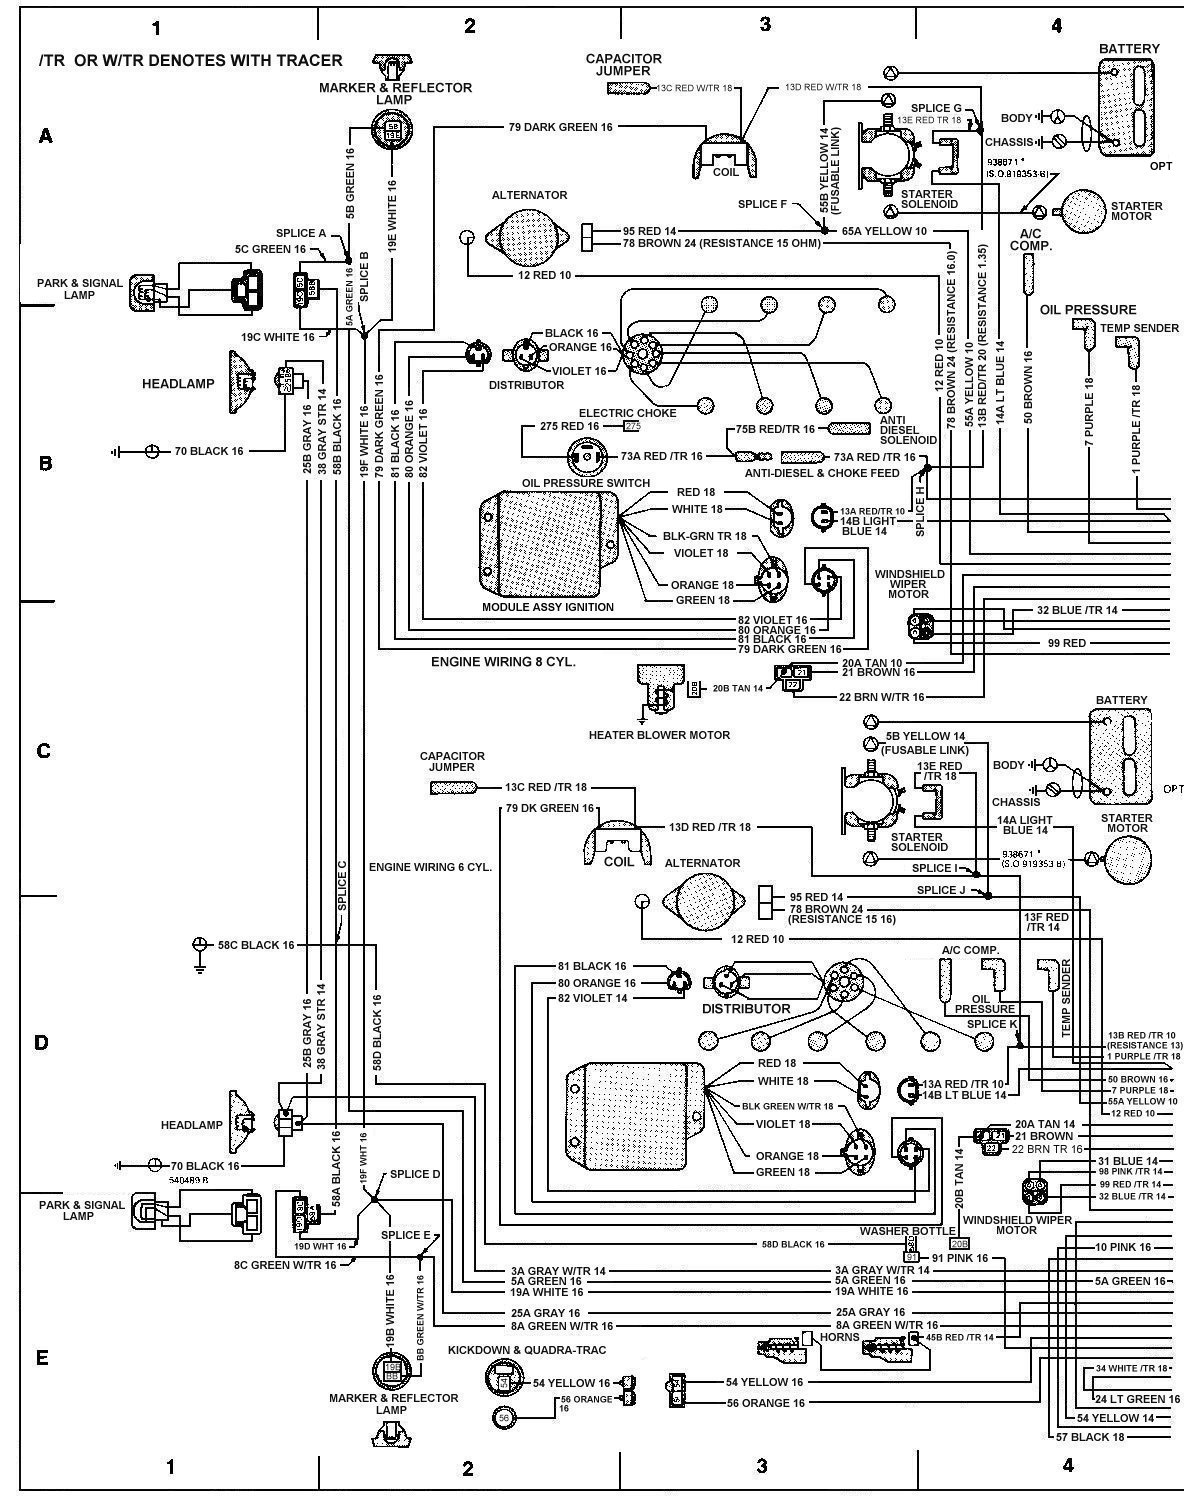 1979 jeep cj7 starter wiring diagram